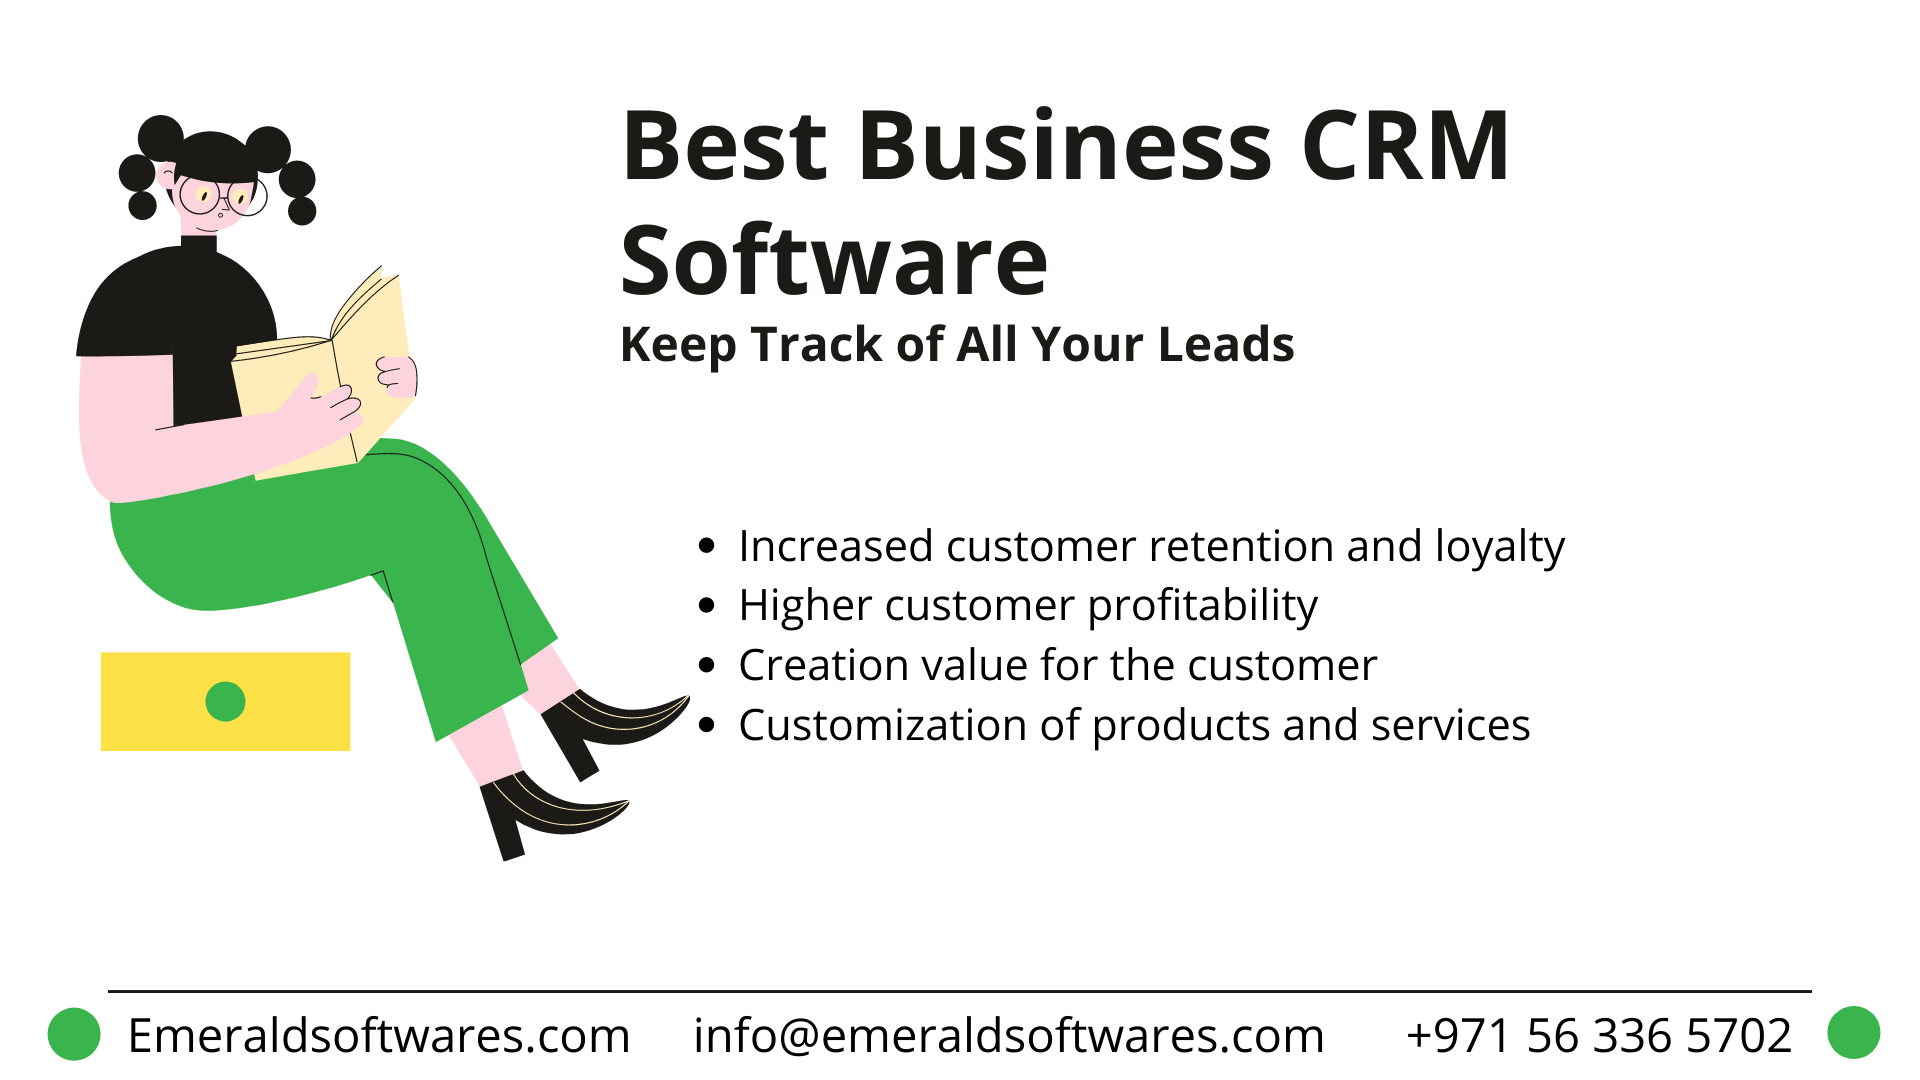 Best Business CRM Software – Keep Track of All Your Leads